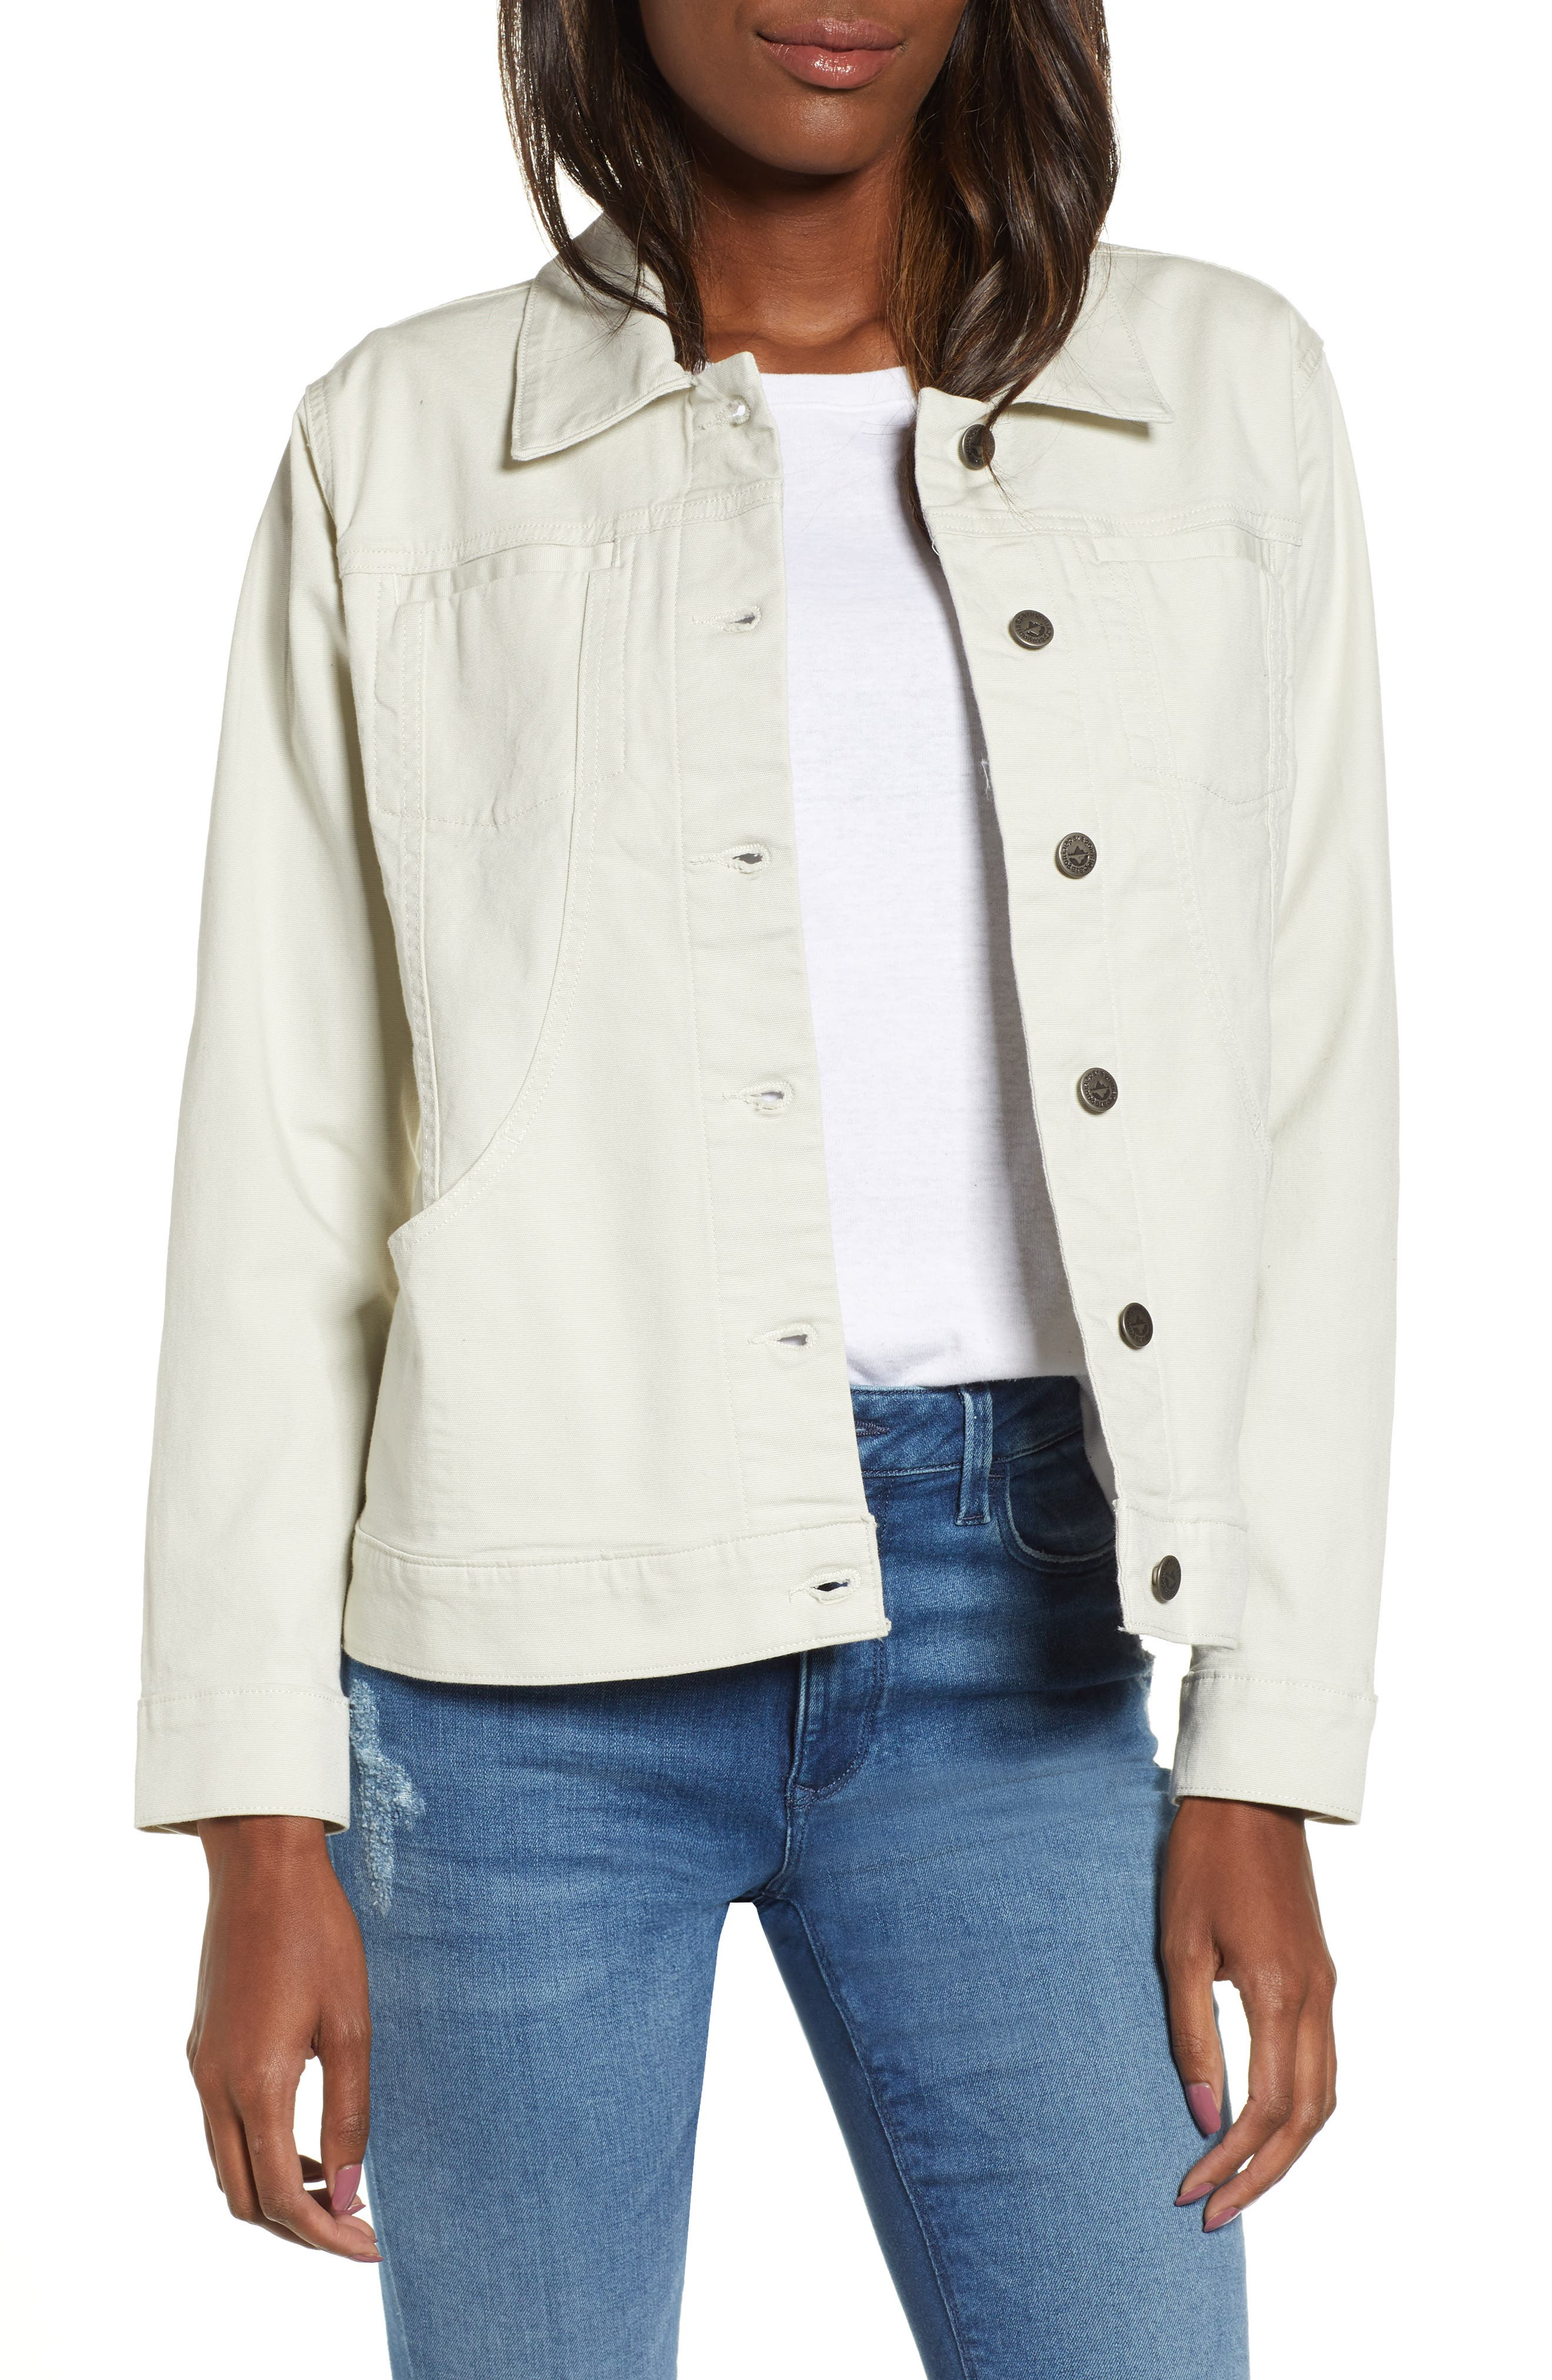 Patagonia Stand Up Shirt Jacket, Beige